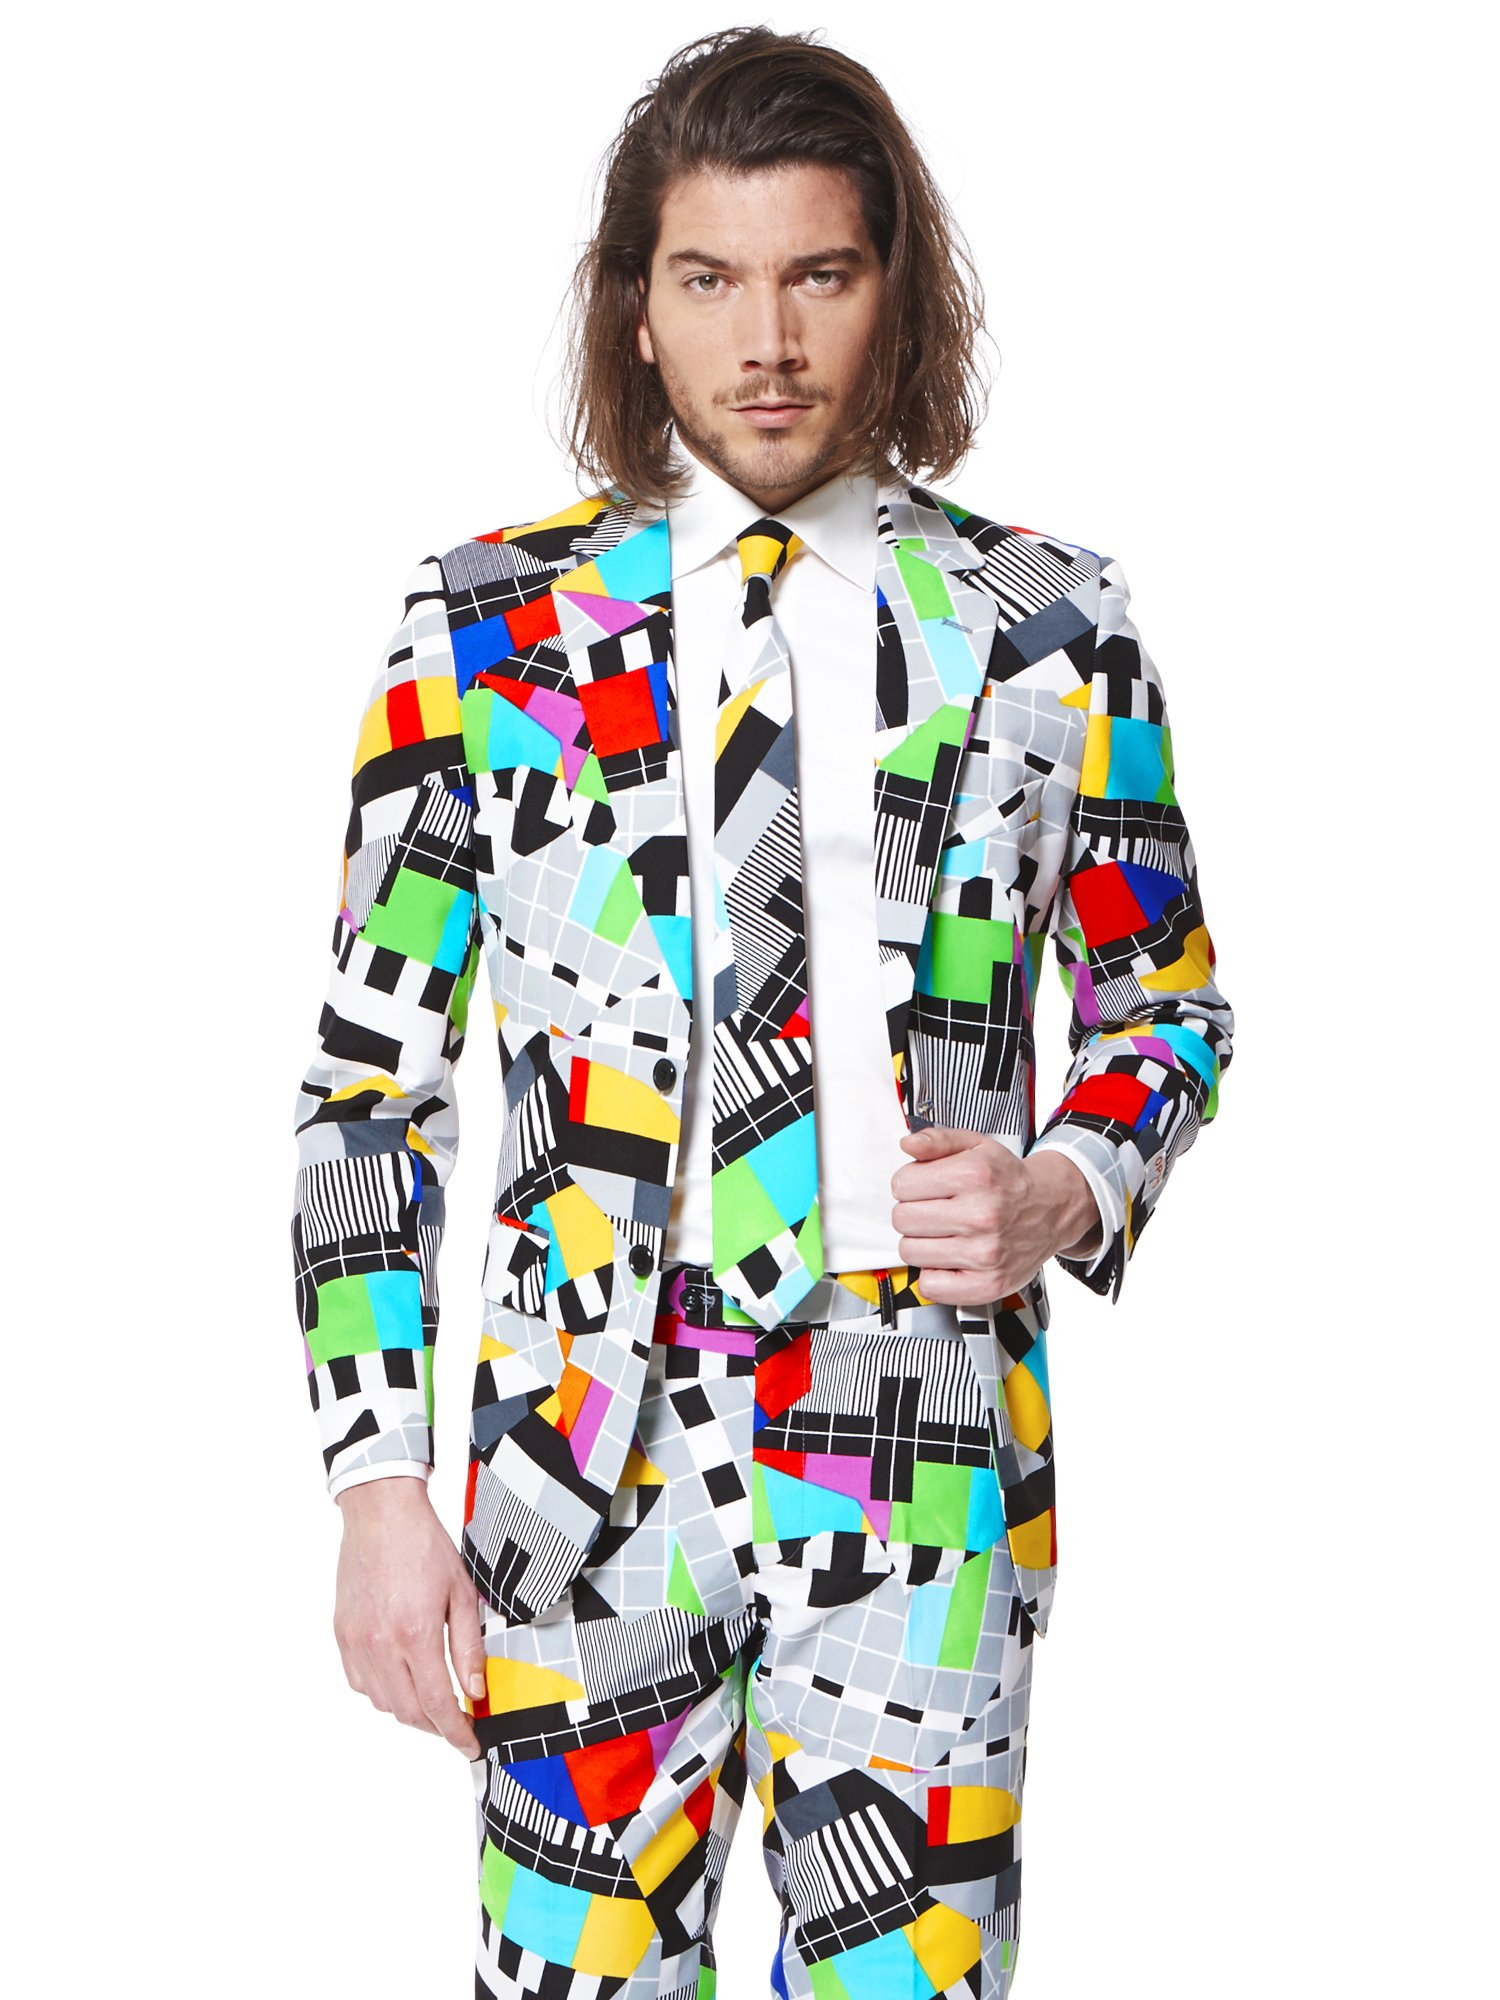 Opposuits Testival Suit for Men Comes with Jacket, Pants and Tie in Funny 80's TV Test Card Print – 100% by Opposuits